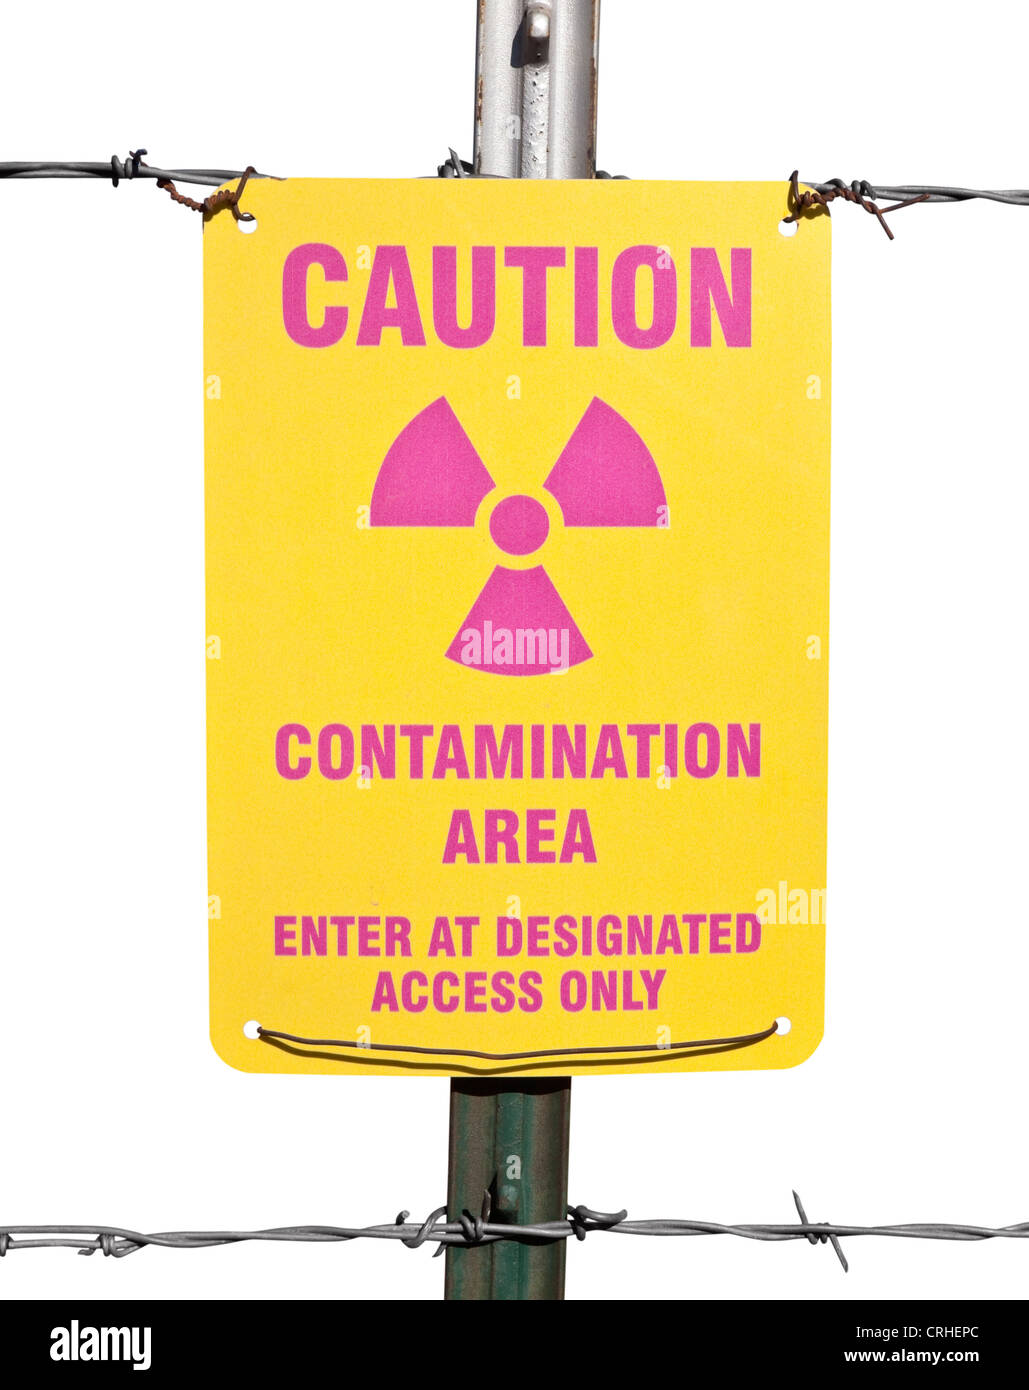 Caution radioactive contamination warning sign with barb wire fence isolated. - Stock Image